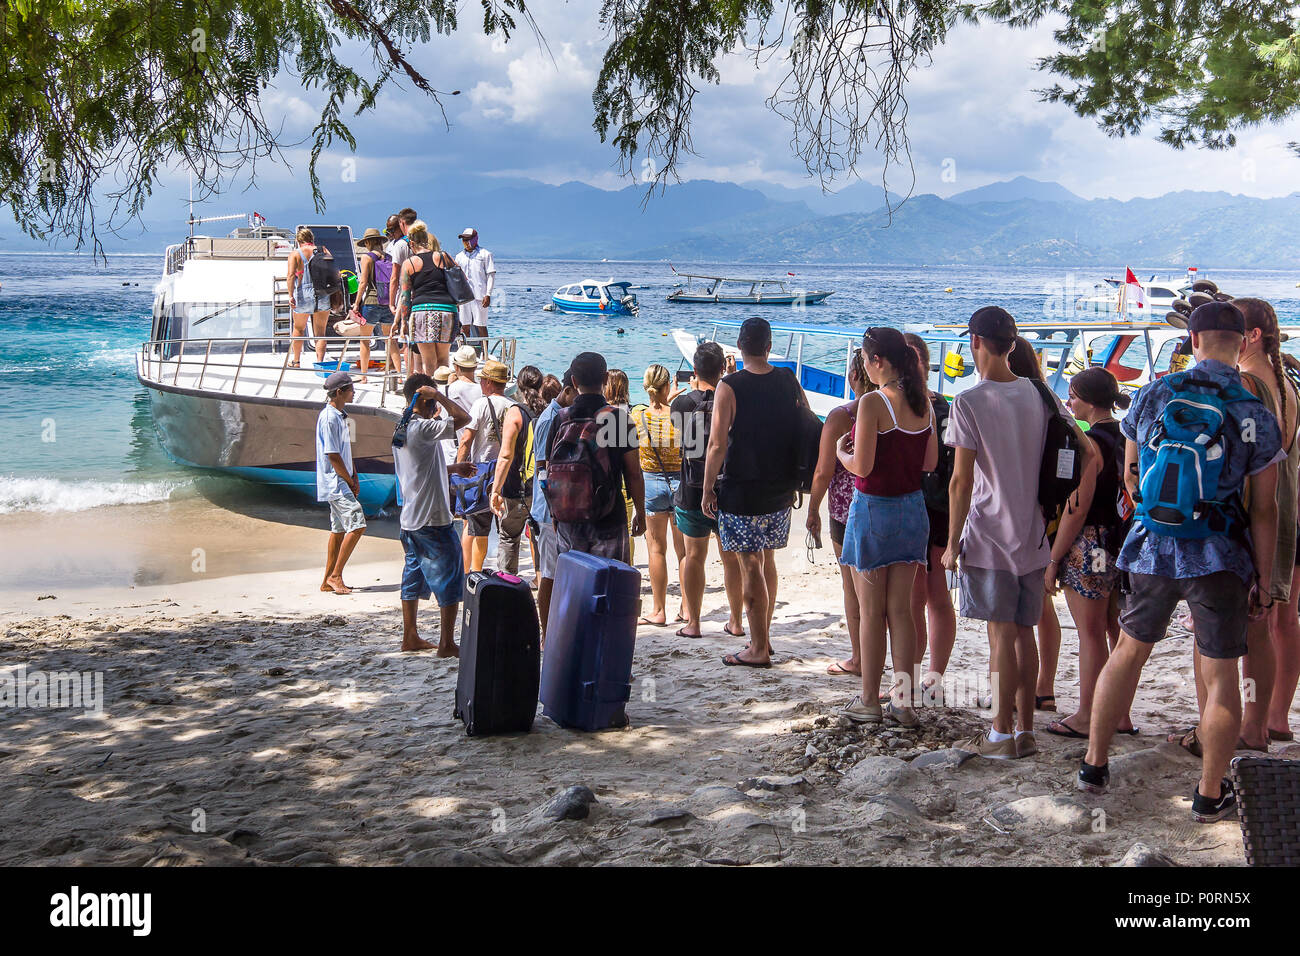 Ferry from Gili Trawangan and Lombok to Bali, tourists standing in line and embark the ferry, Gili Trawngan, Indonesia - Stock Image